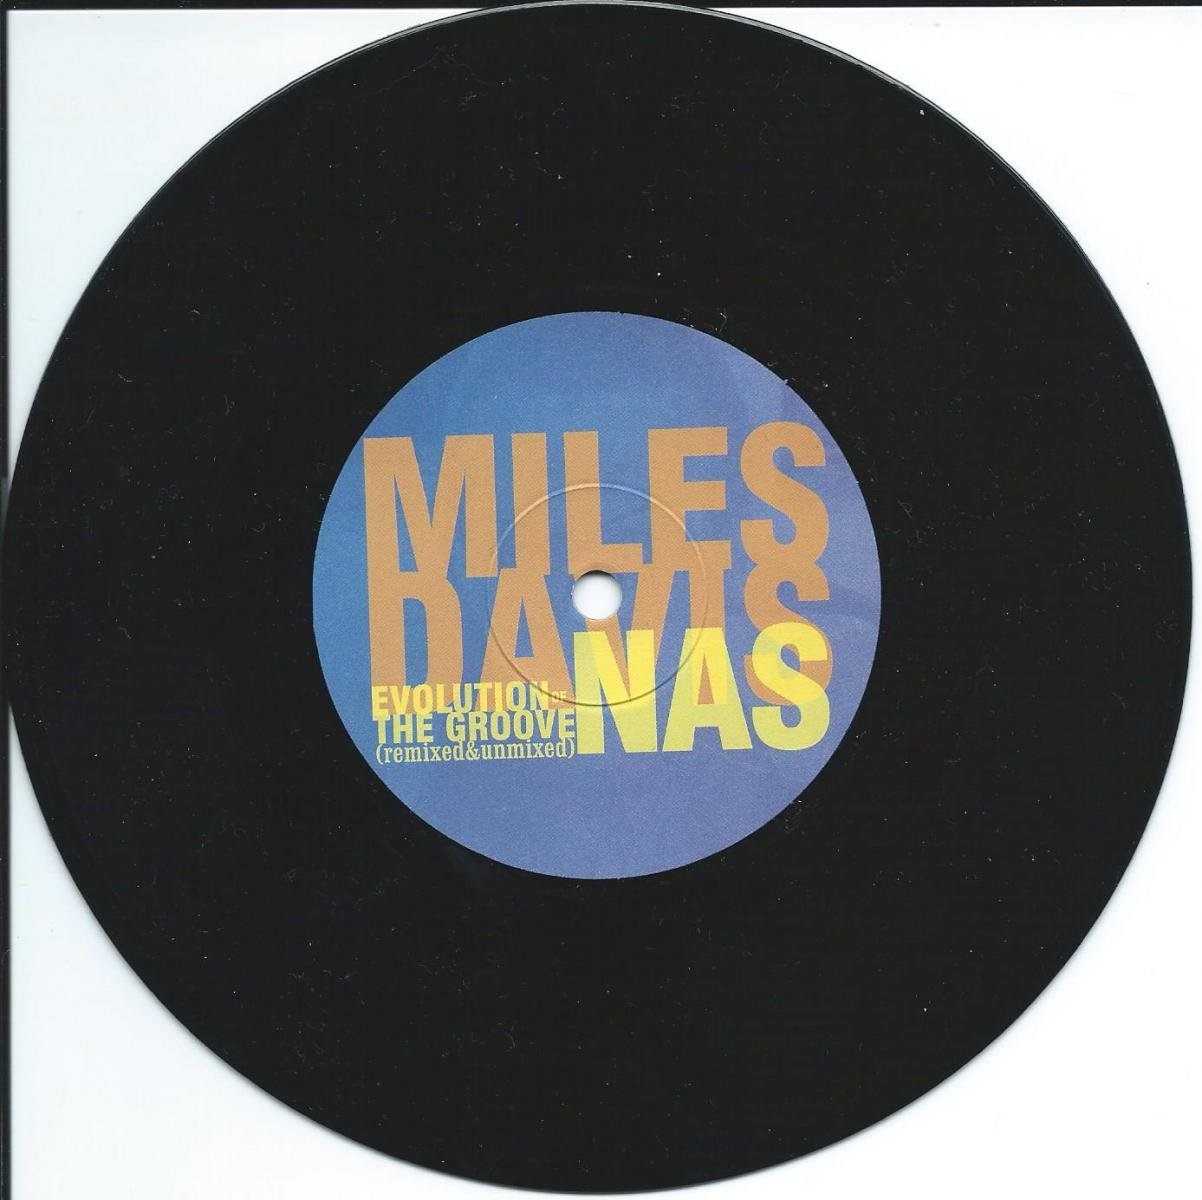 MILES DAVIS FEAT. NAS / FREEDOM JAZZ DANCE (EVOLUTION OF THE GROOVE) (7